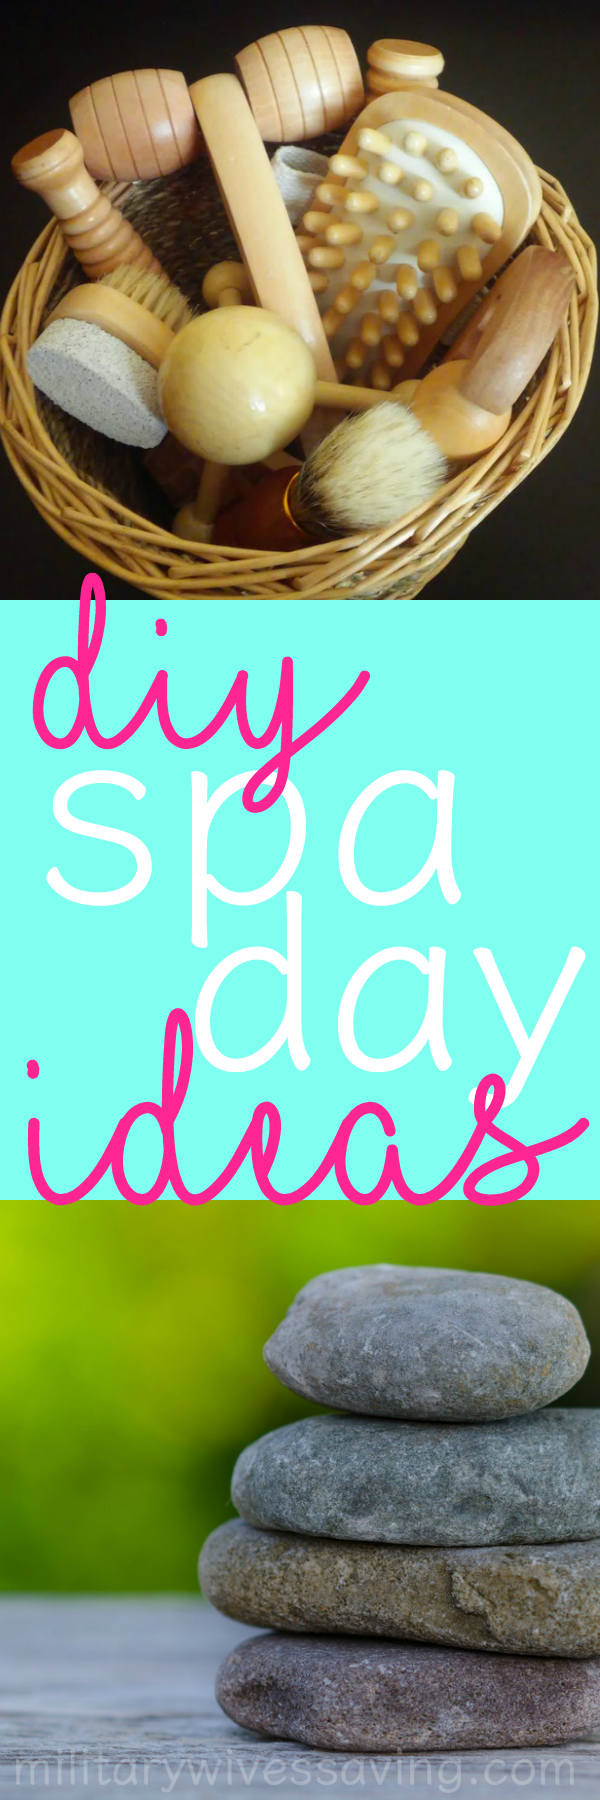 DIY Spa Day Ideas to Pamper Yourself and Relax at Home!